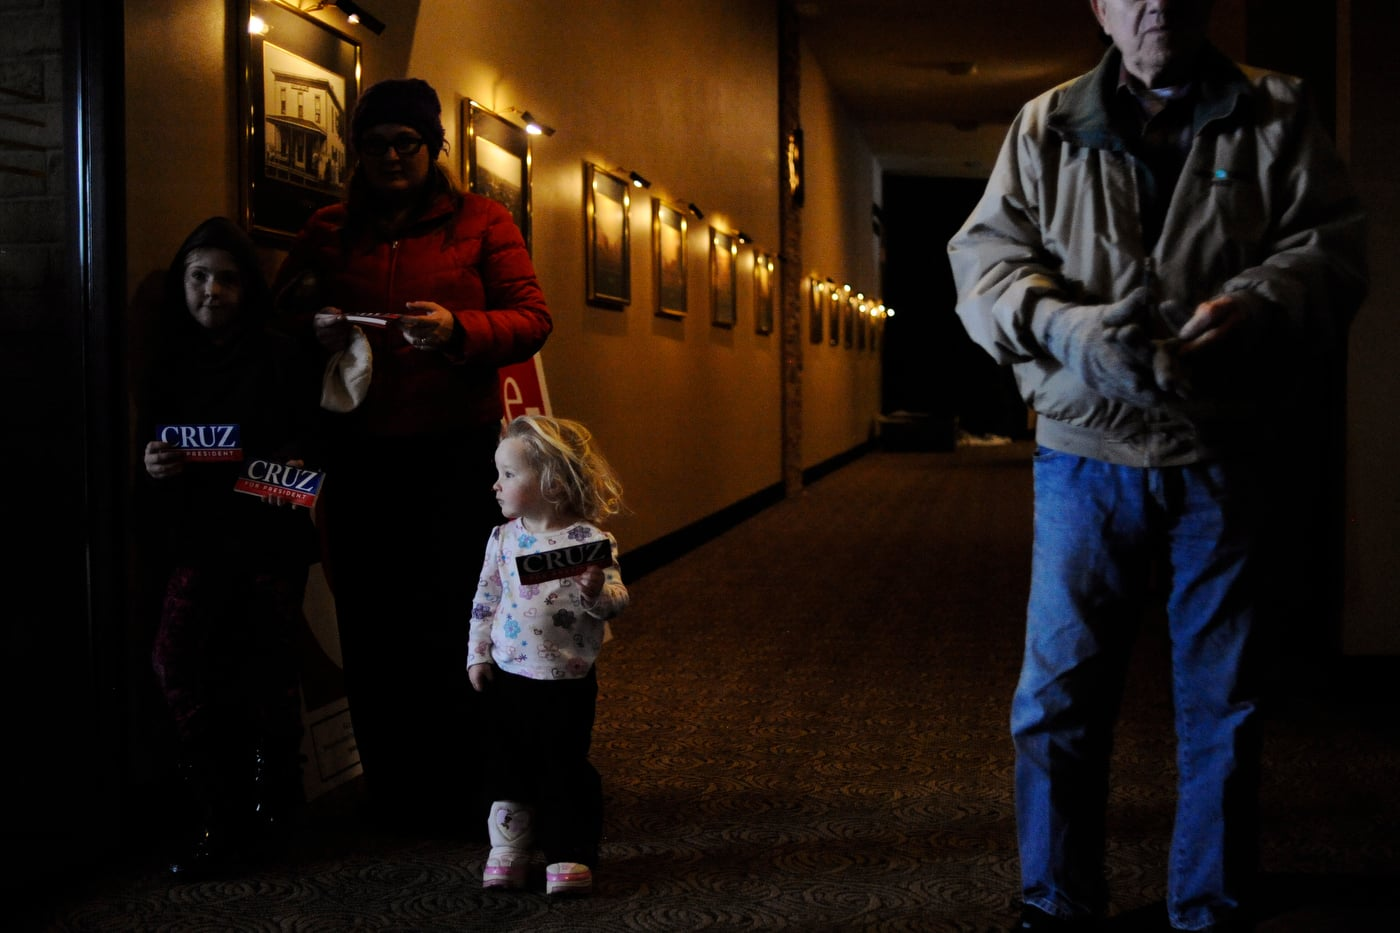 Izzy Wadsley, 3, hands out bumper stickers with her sister Isla Wadsley, 8, and mother Melinda Wadsley at U.S. Republican presidential candidate Ted Cruz' campaign stop at Charlie's Steakhouse at the Carrollton Inn in Carroll, Iowa January 4, 2016. REUTERS/Mark Kauzlarich